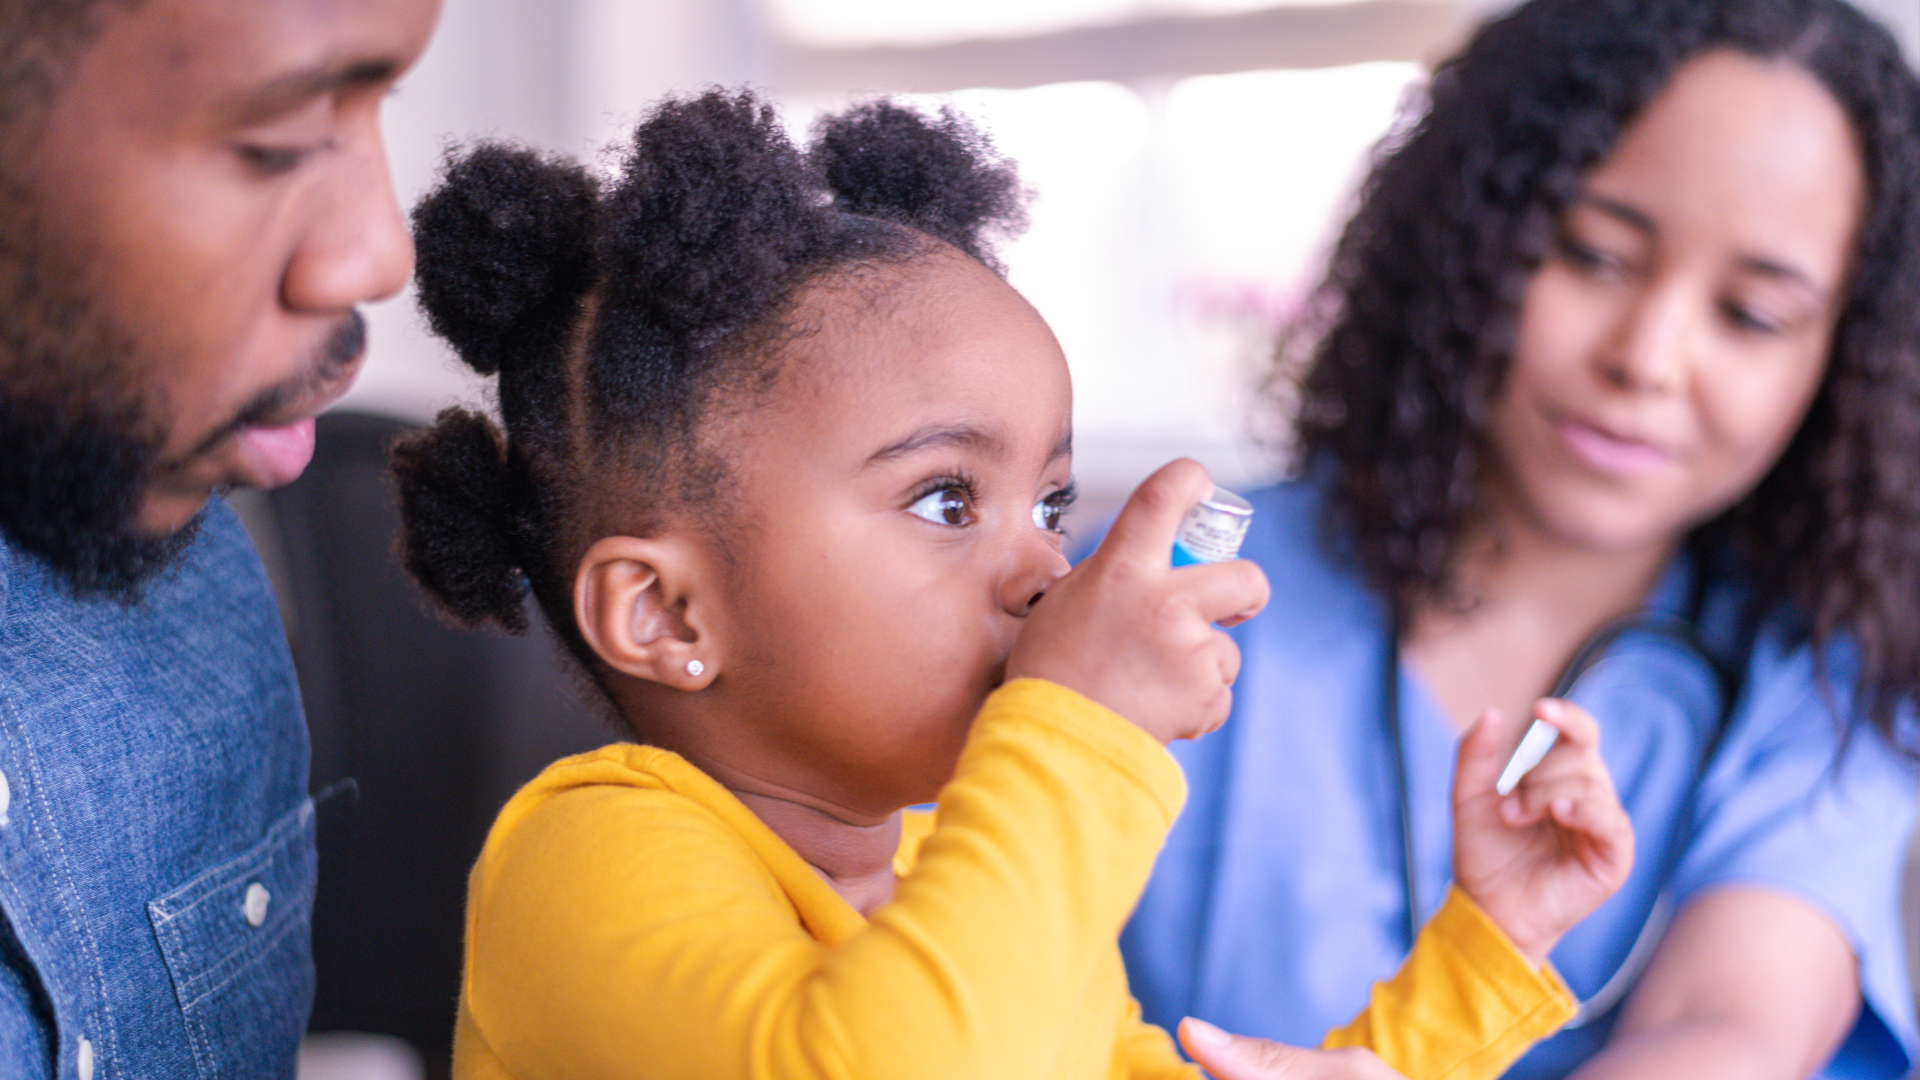 Atrium Health clinicians, patients and researchers have developed an interactive, web-based tool to help patients, their caregivers and providers create an action plan to manage asthma symptoms and lead healthy, active lives.